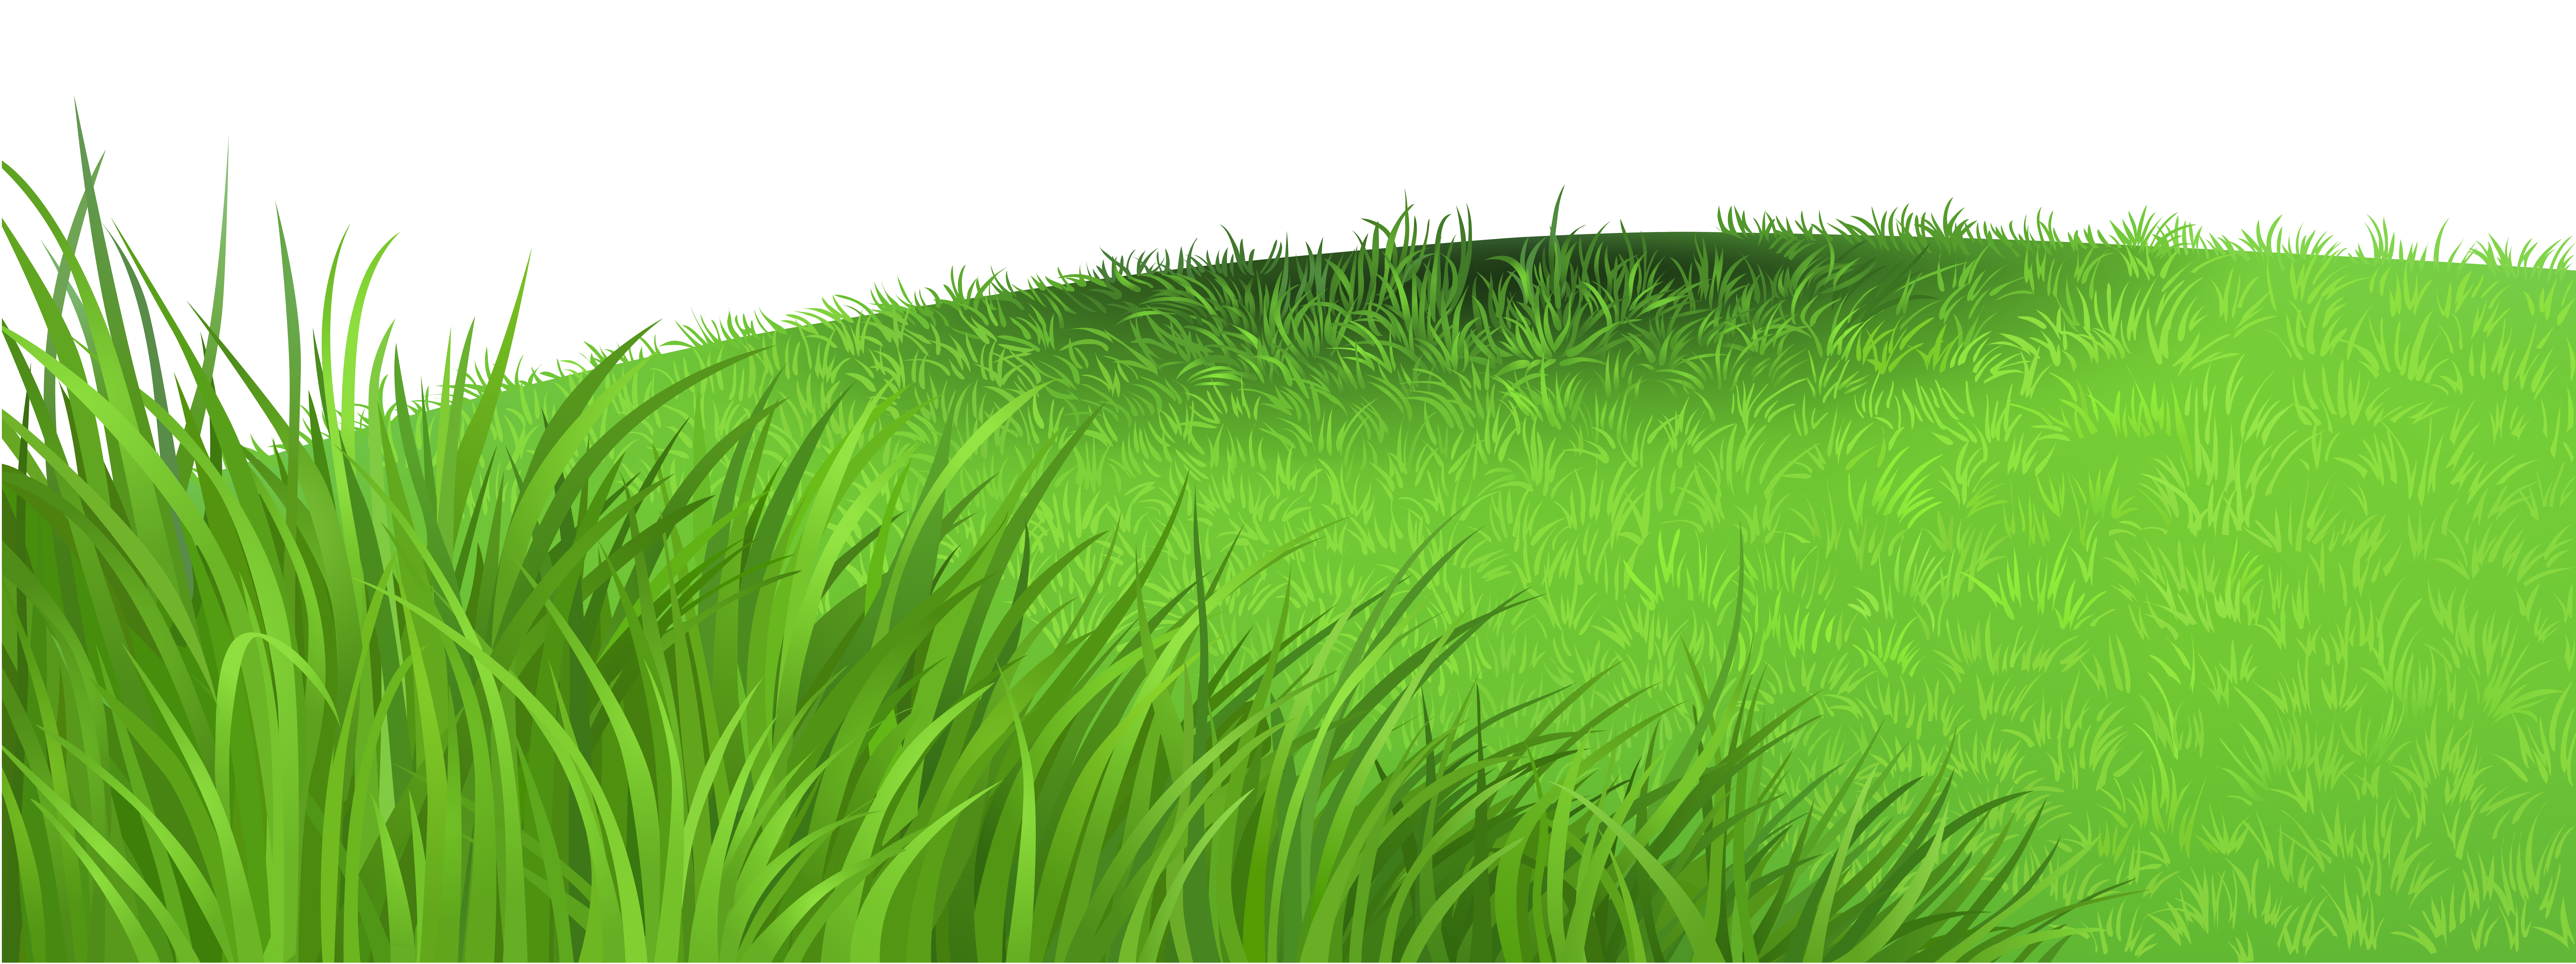 hight resolution of clipart free grass high quality images photo art texture arts